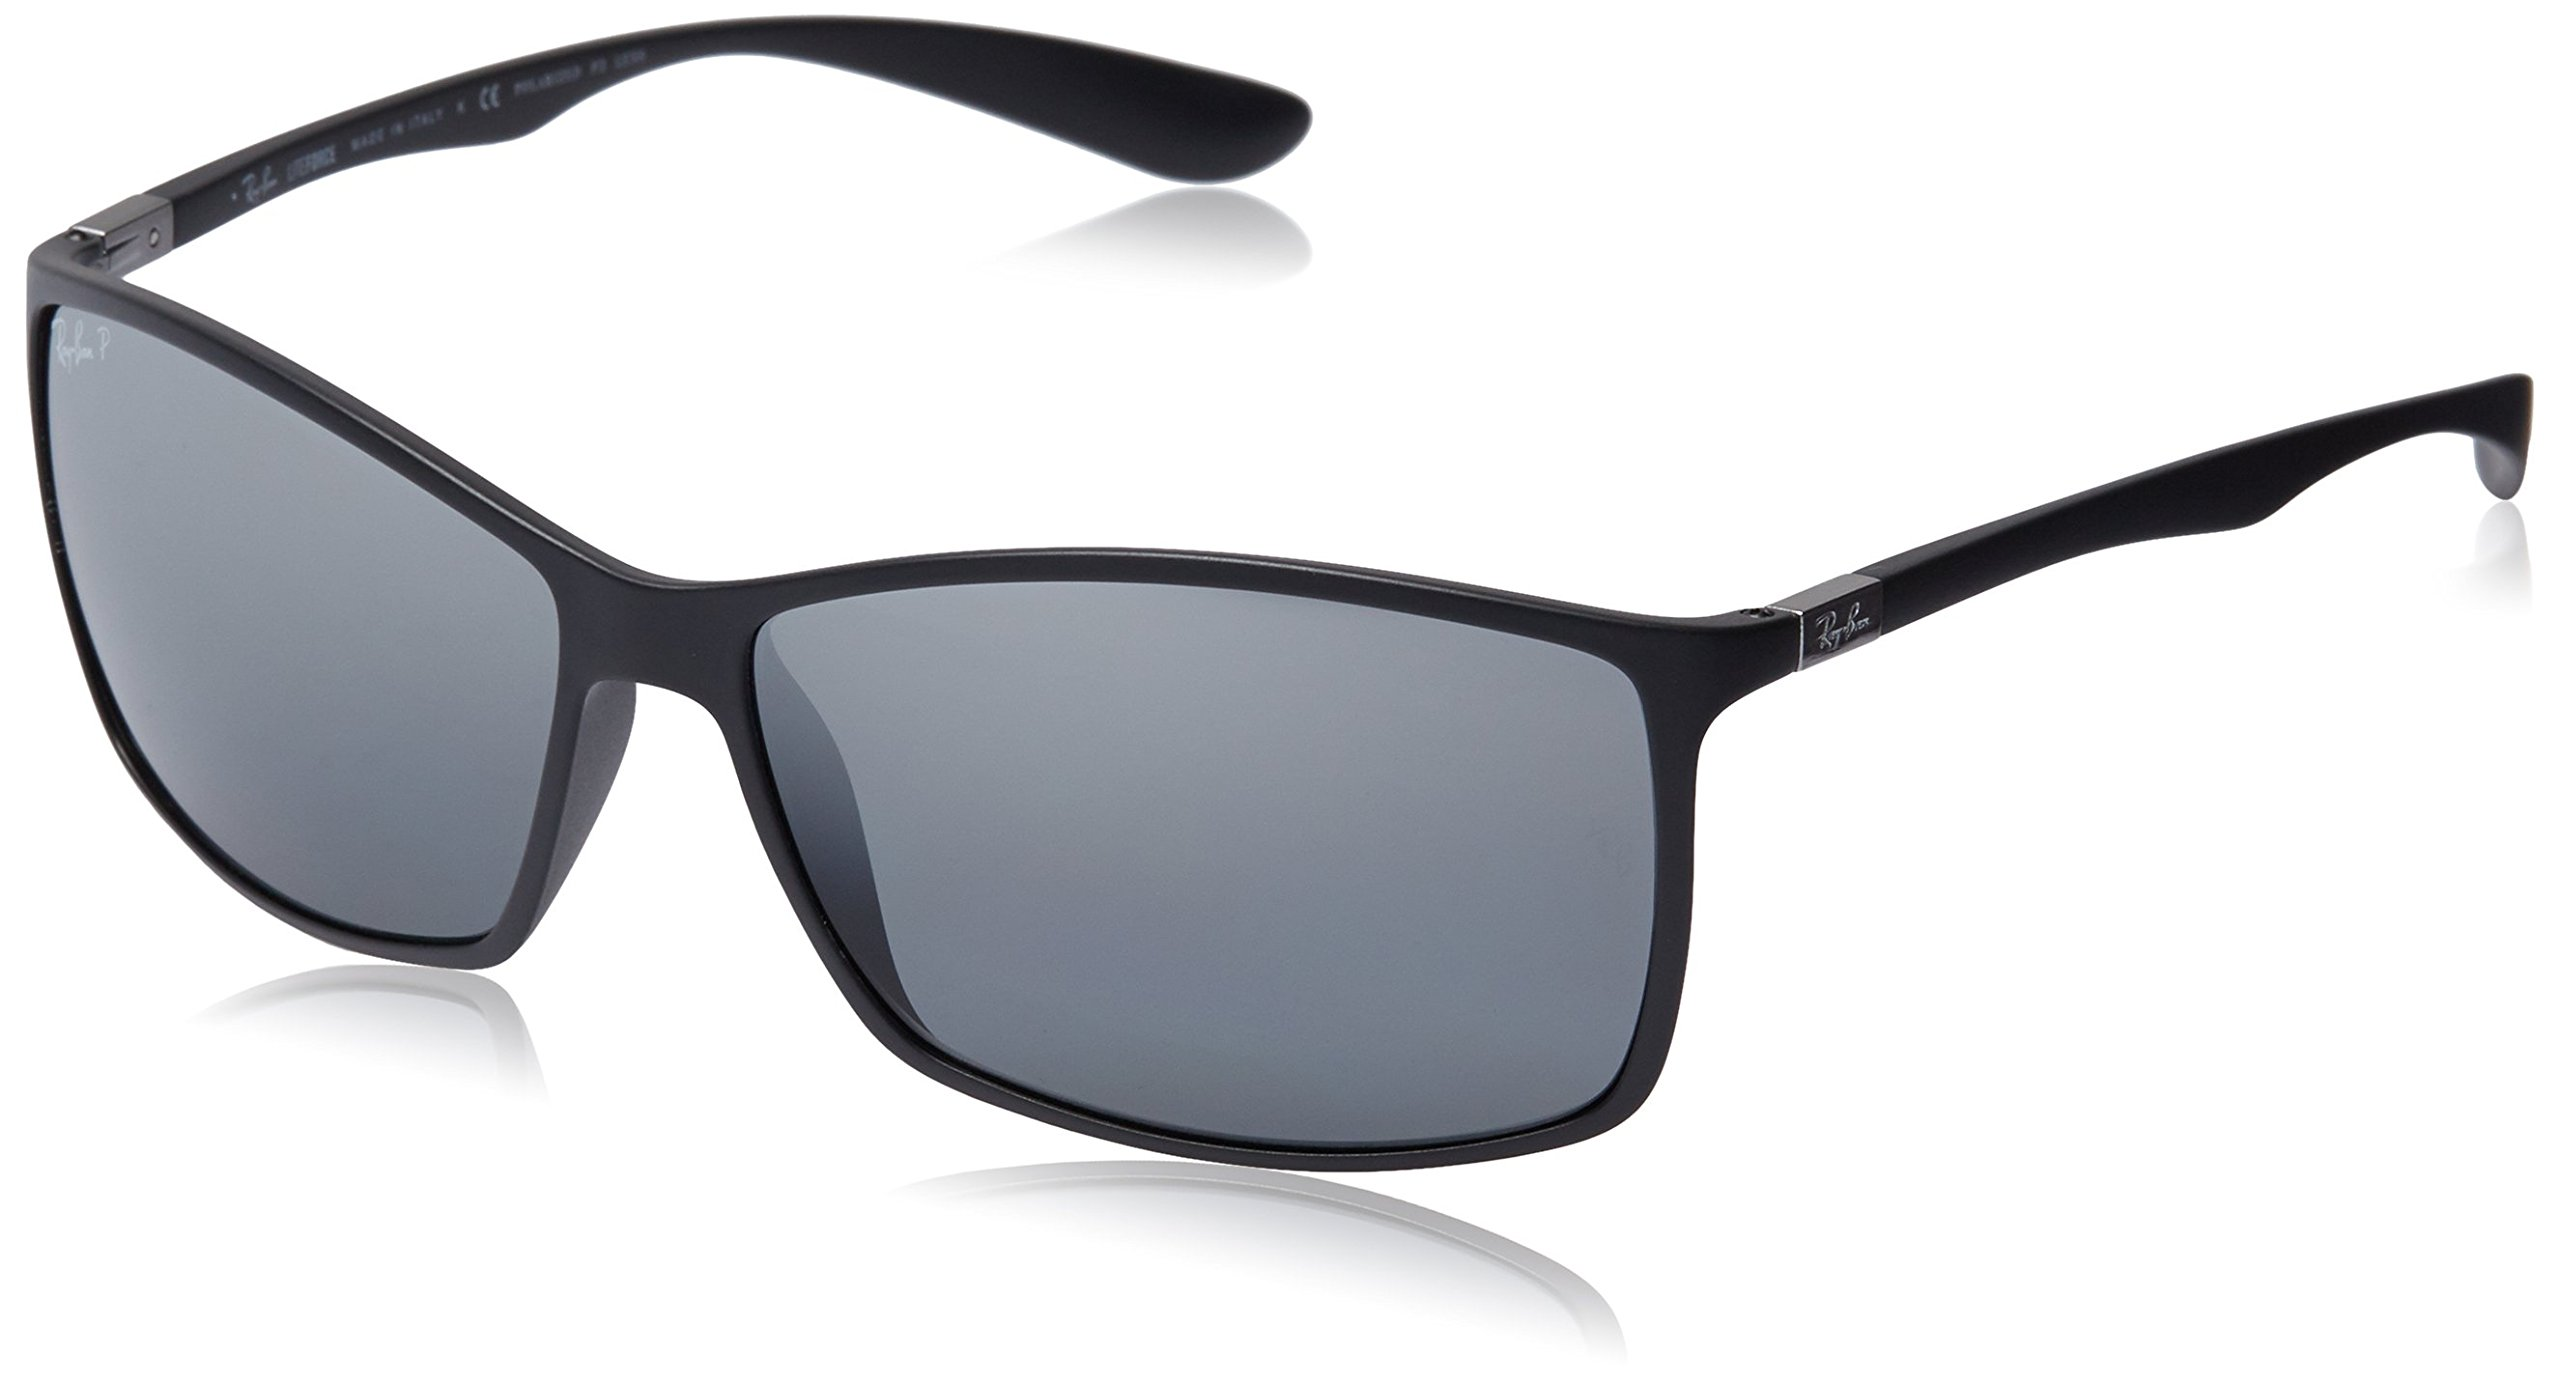 RAY-BAN RB4179 Liteforce Square Sunglasses, Matte Black/Polarized Silver Gradient Mirror, 62 mm by RAY-BAN